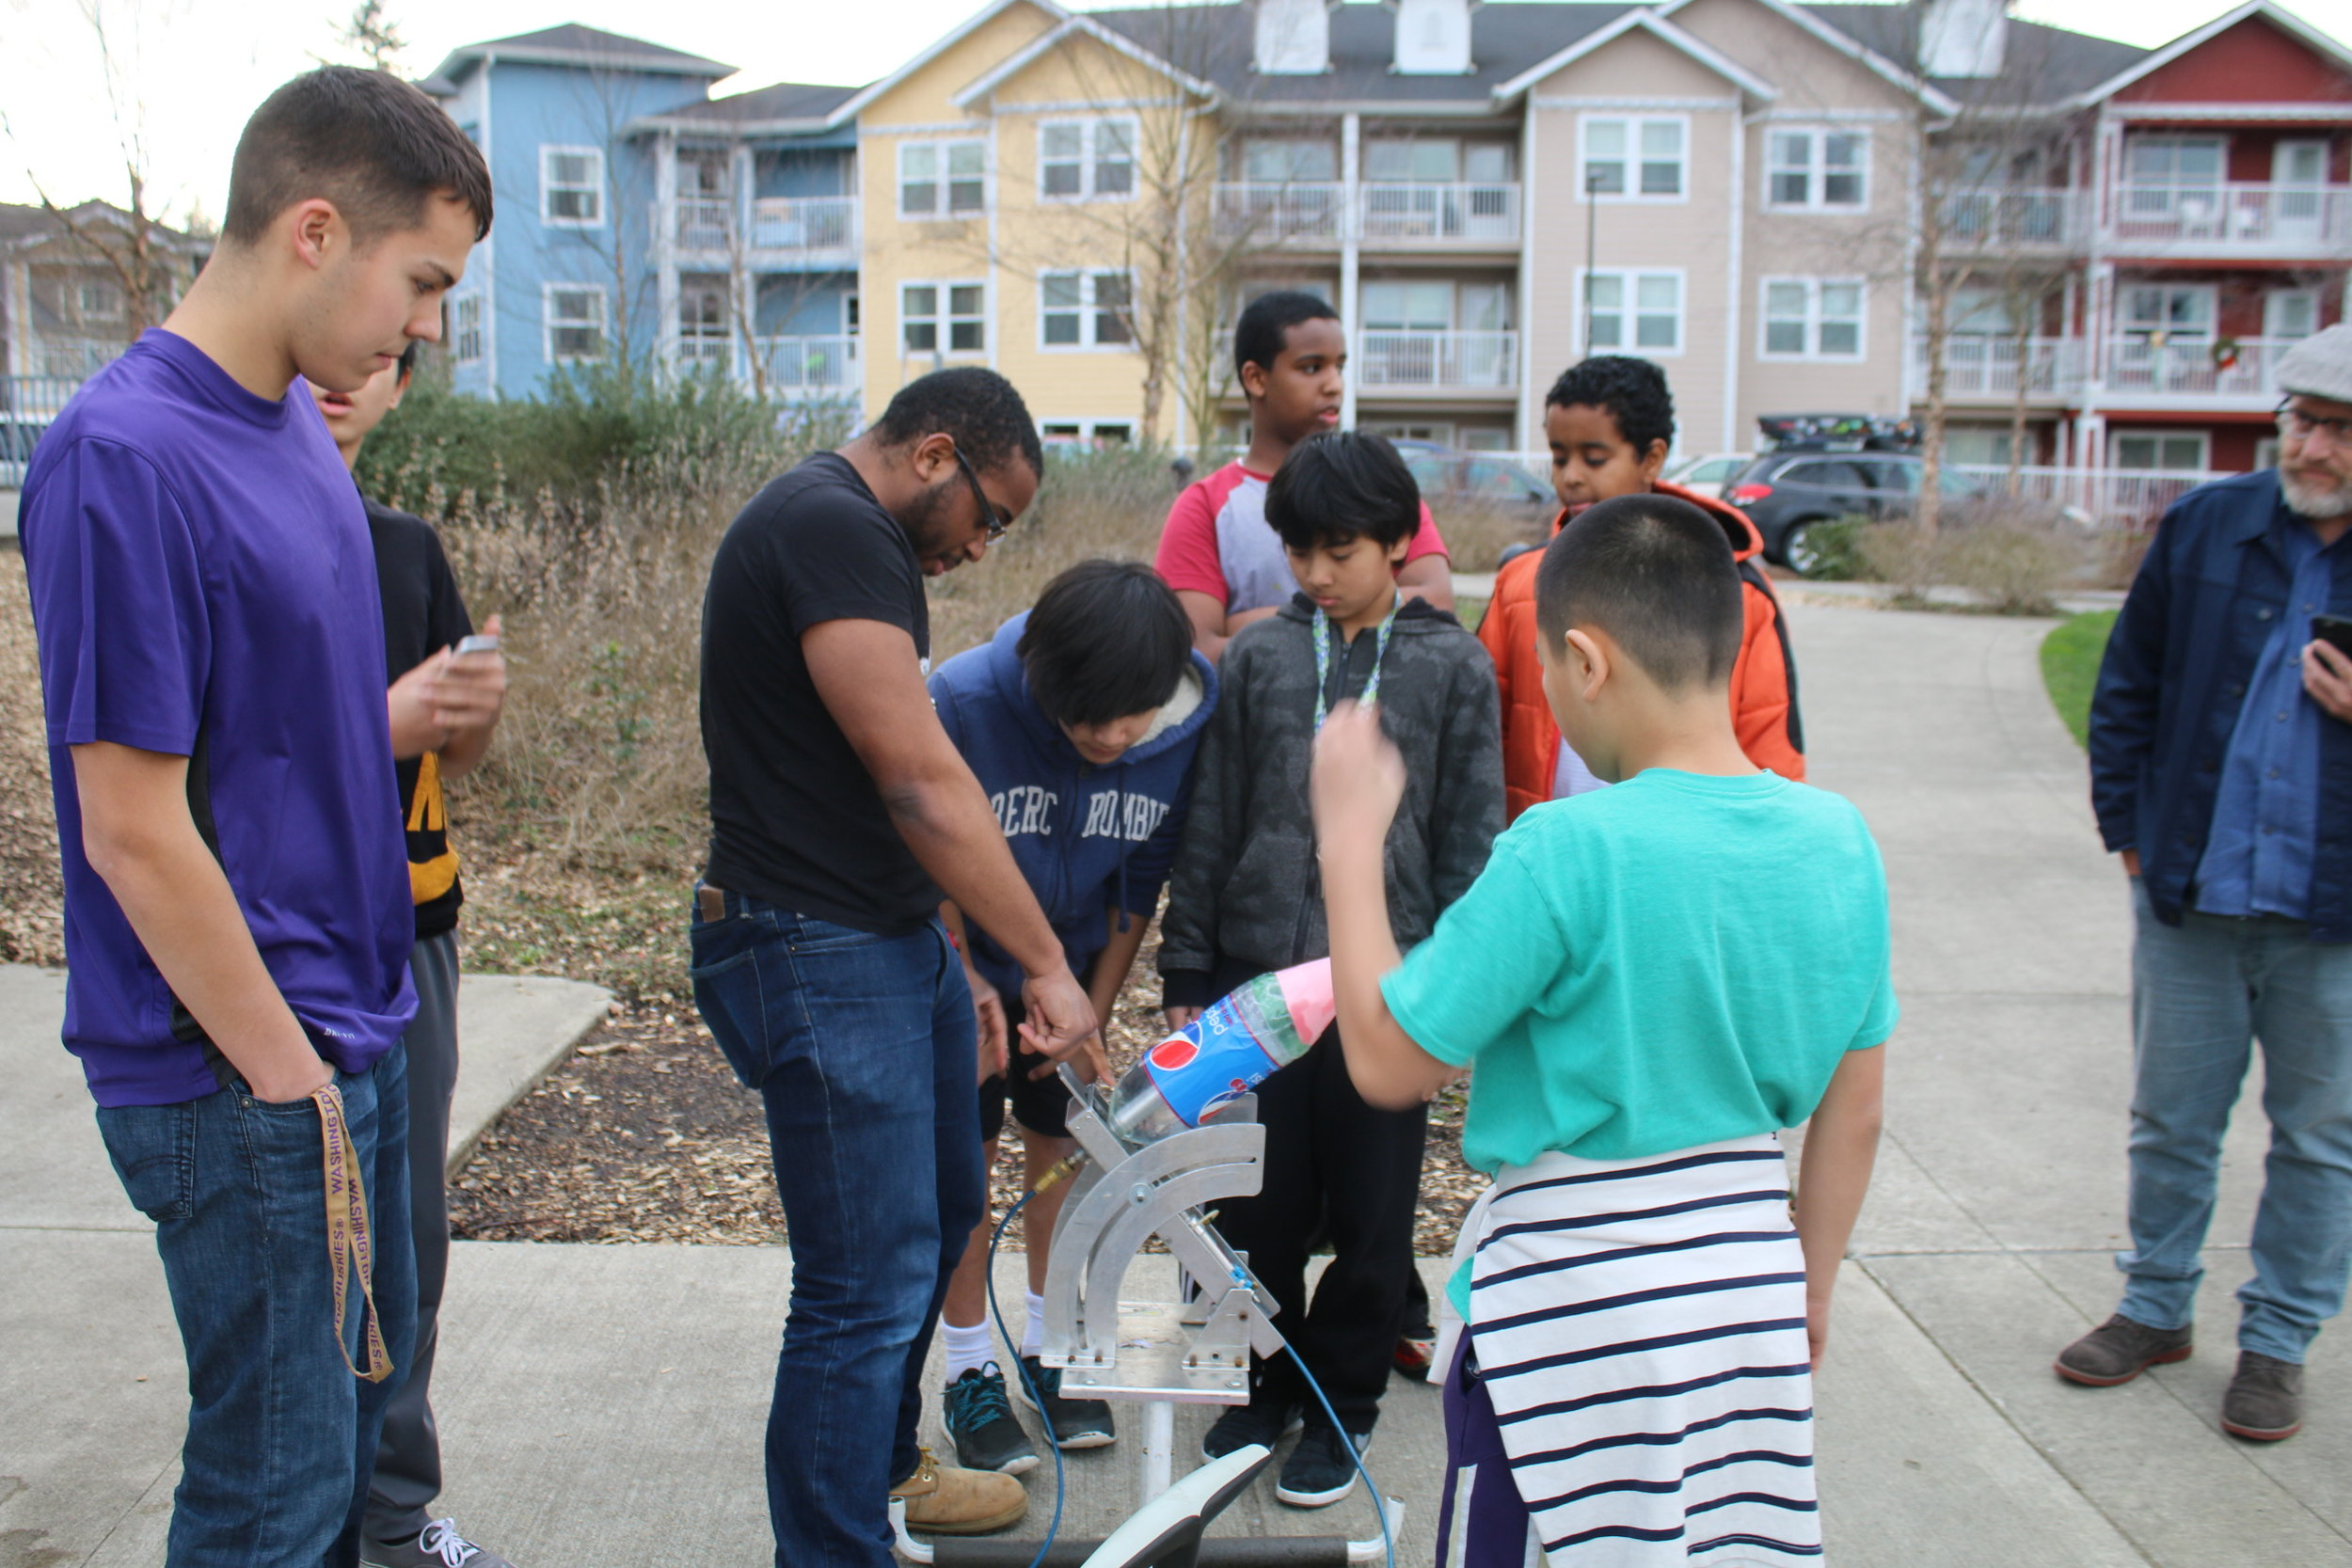 At STUDIO, we pride ourselves on teaching youth various different subjects that the youth participants want to learn about! Here are a couple of UW mentors teaching youth about rocket science.  Our University of Washington mentors work with students not only on amazing STEM based projects, they also help mentor youth with college readiness and tutor them for academic success.